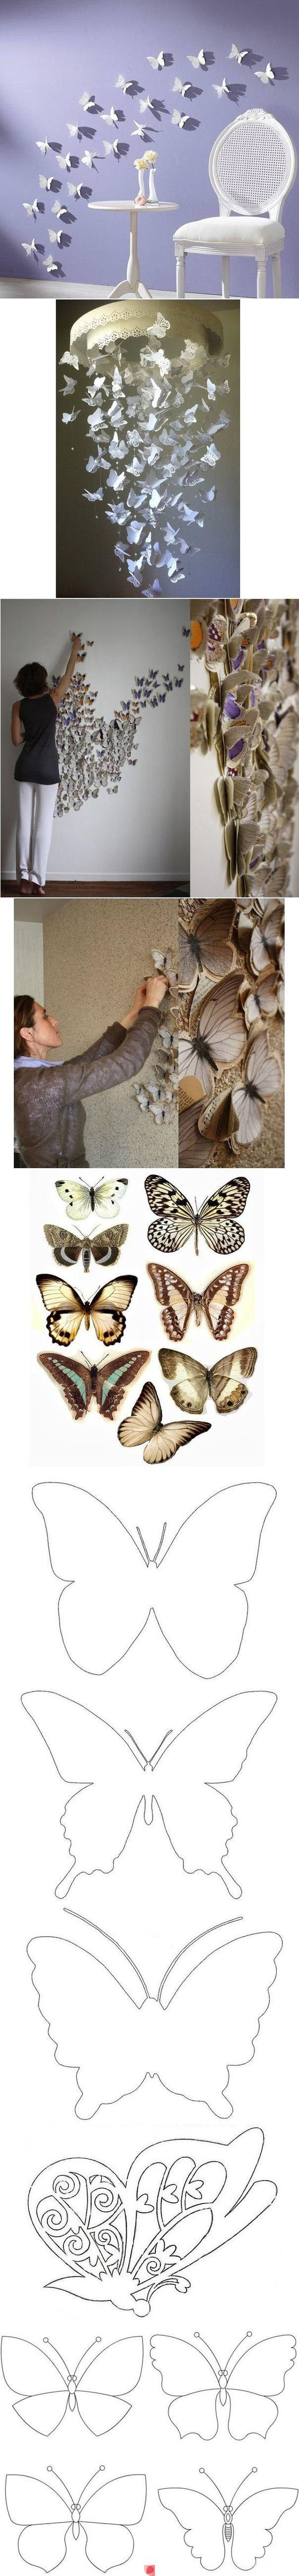 DIY Butterfly Pattern Wall Decor....lovely ♥  with templates for various butterfly shapes: